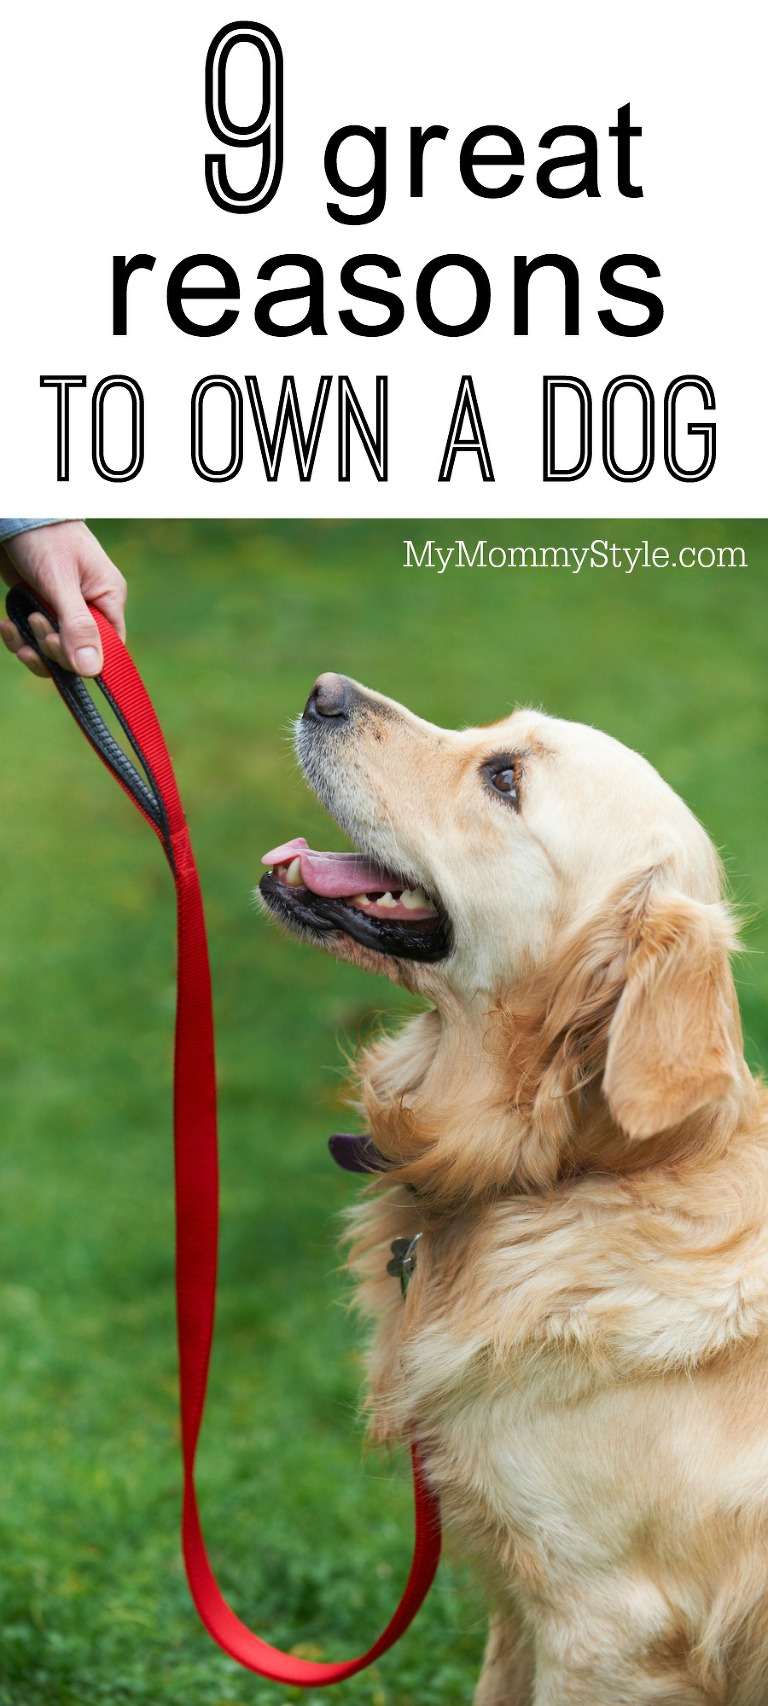 9 great reasons to own a dog